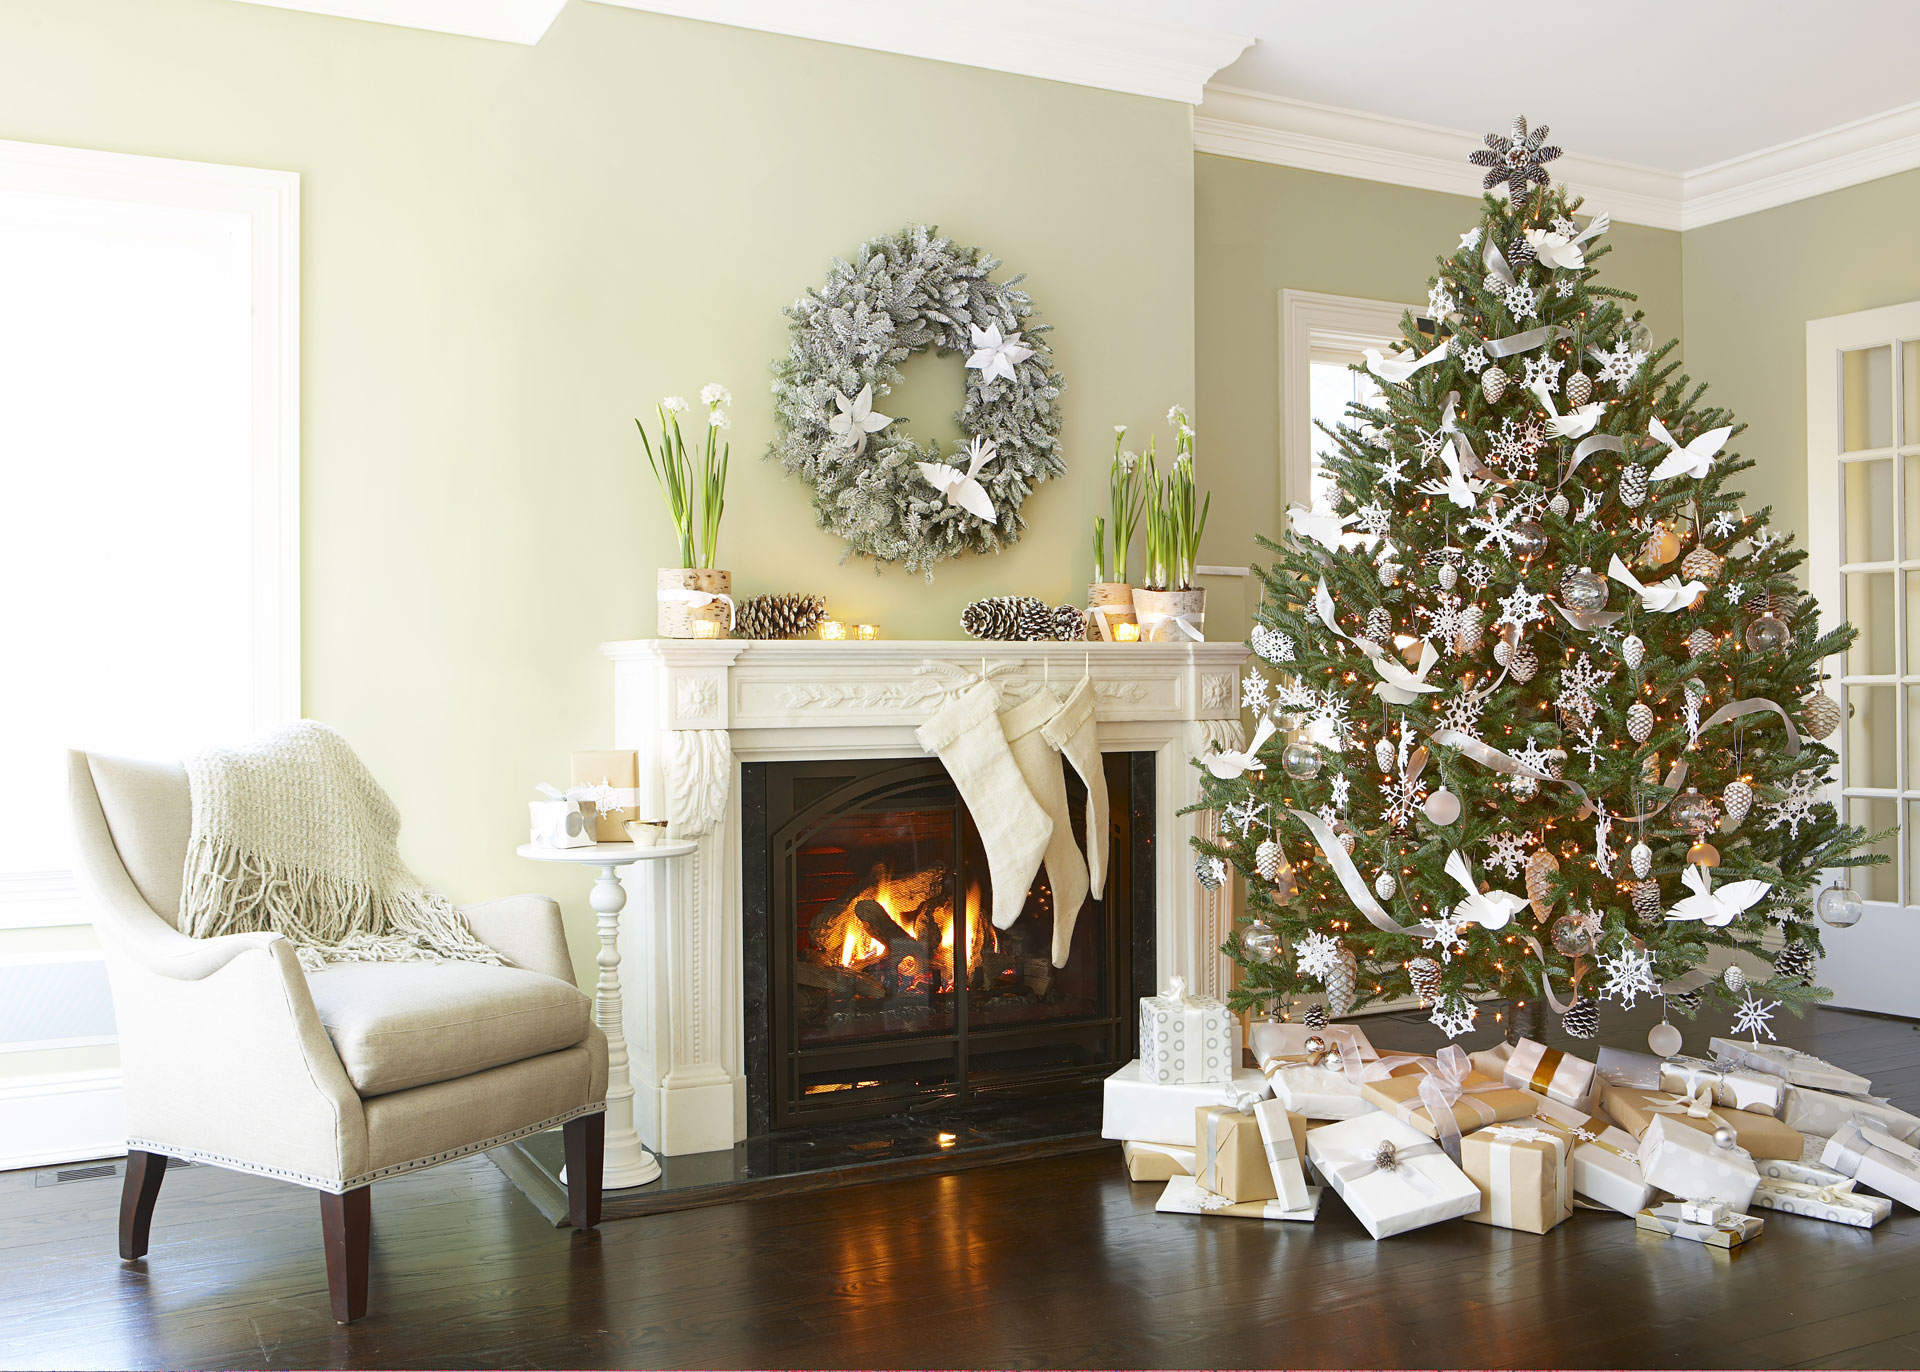 Non traditional christmas tree ideas - Non Traditional Christmas Tree Ideas 58